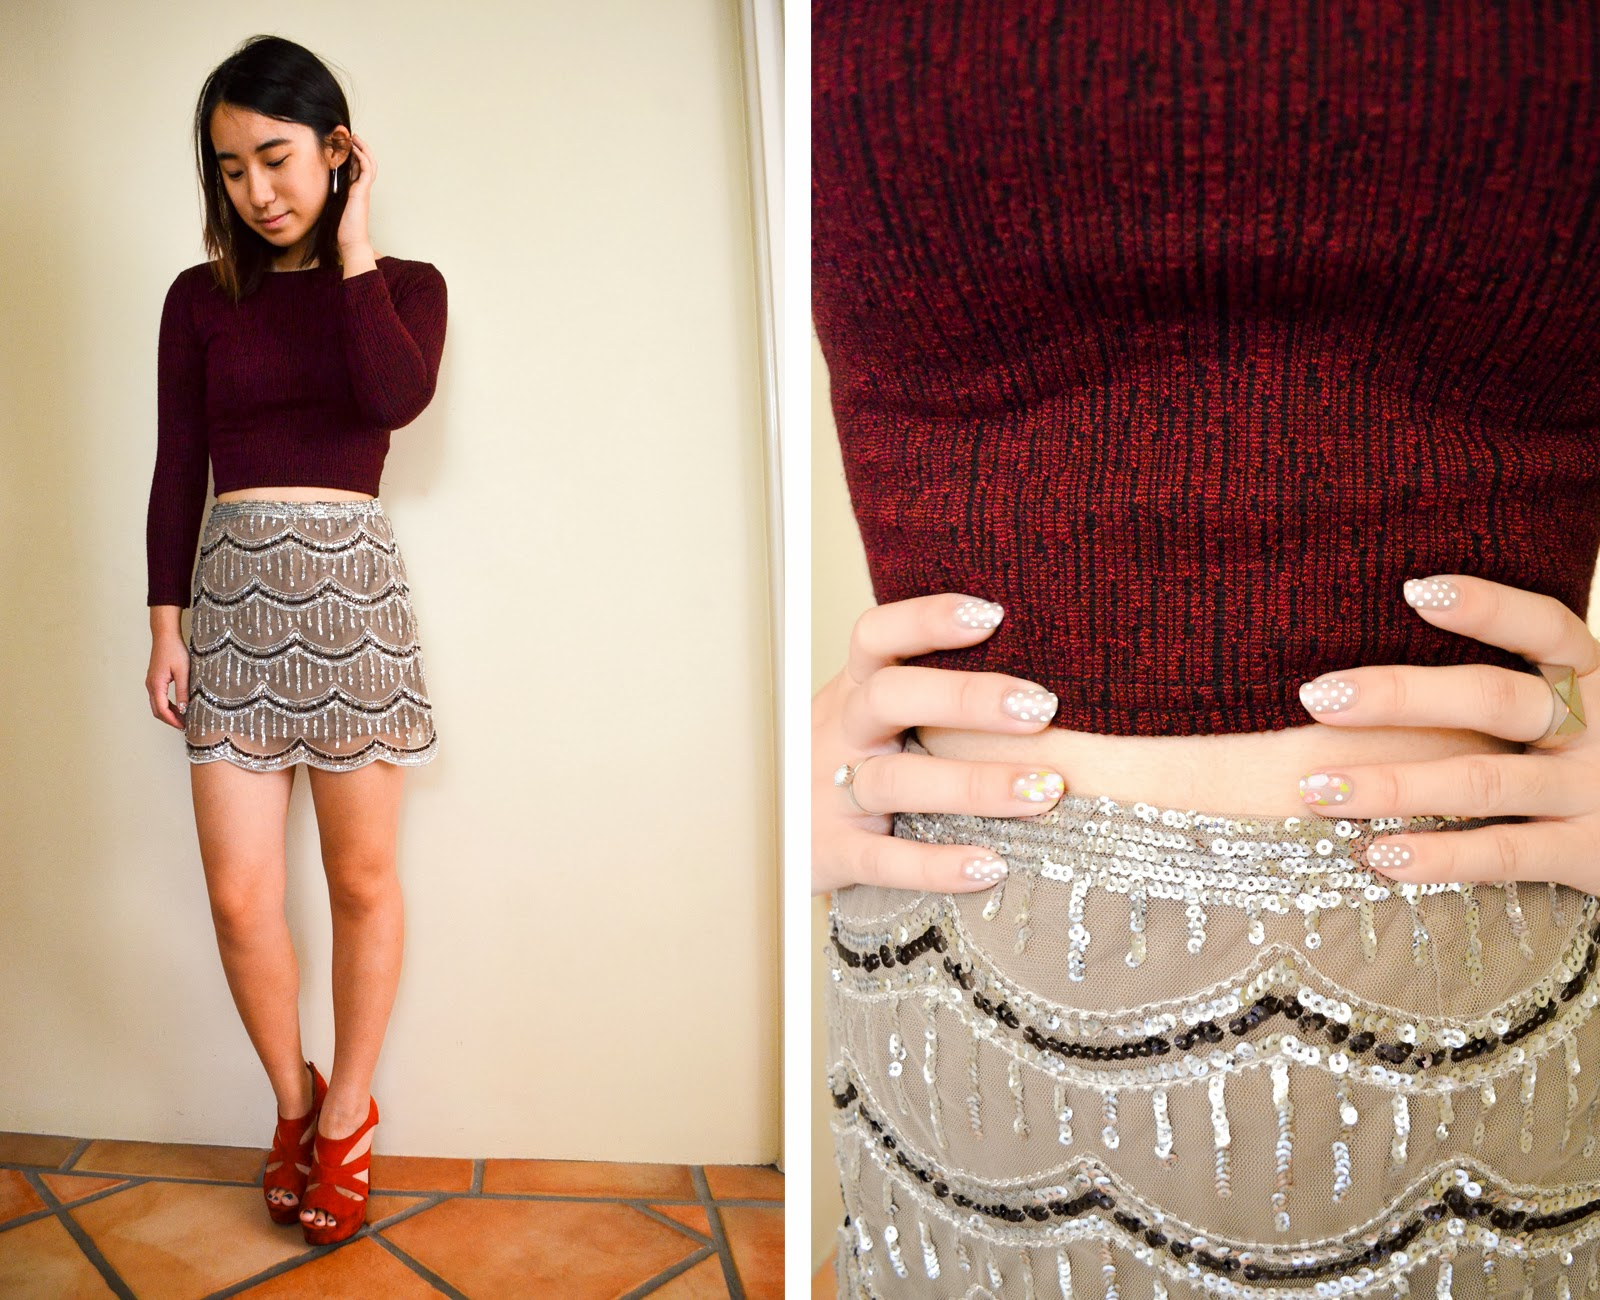 red maroon burlesque 1920s skirt scallop sequin crop top long sleeved mini heels rings earrings silver inspiration outfit looks